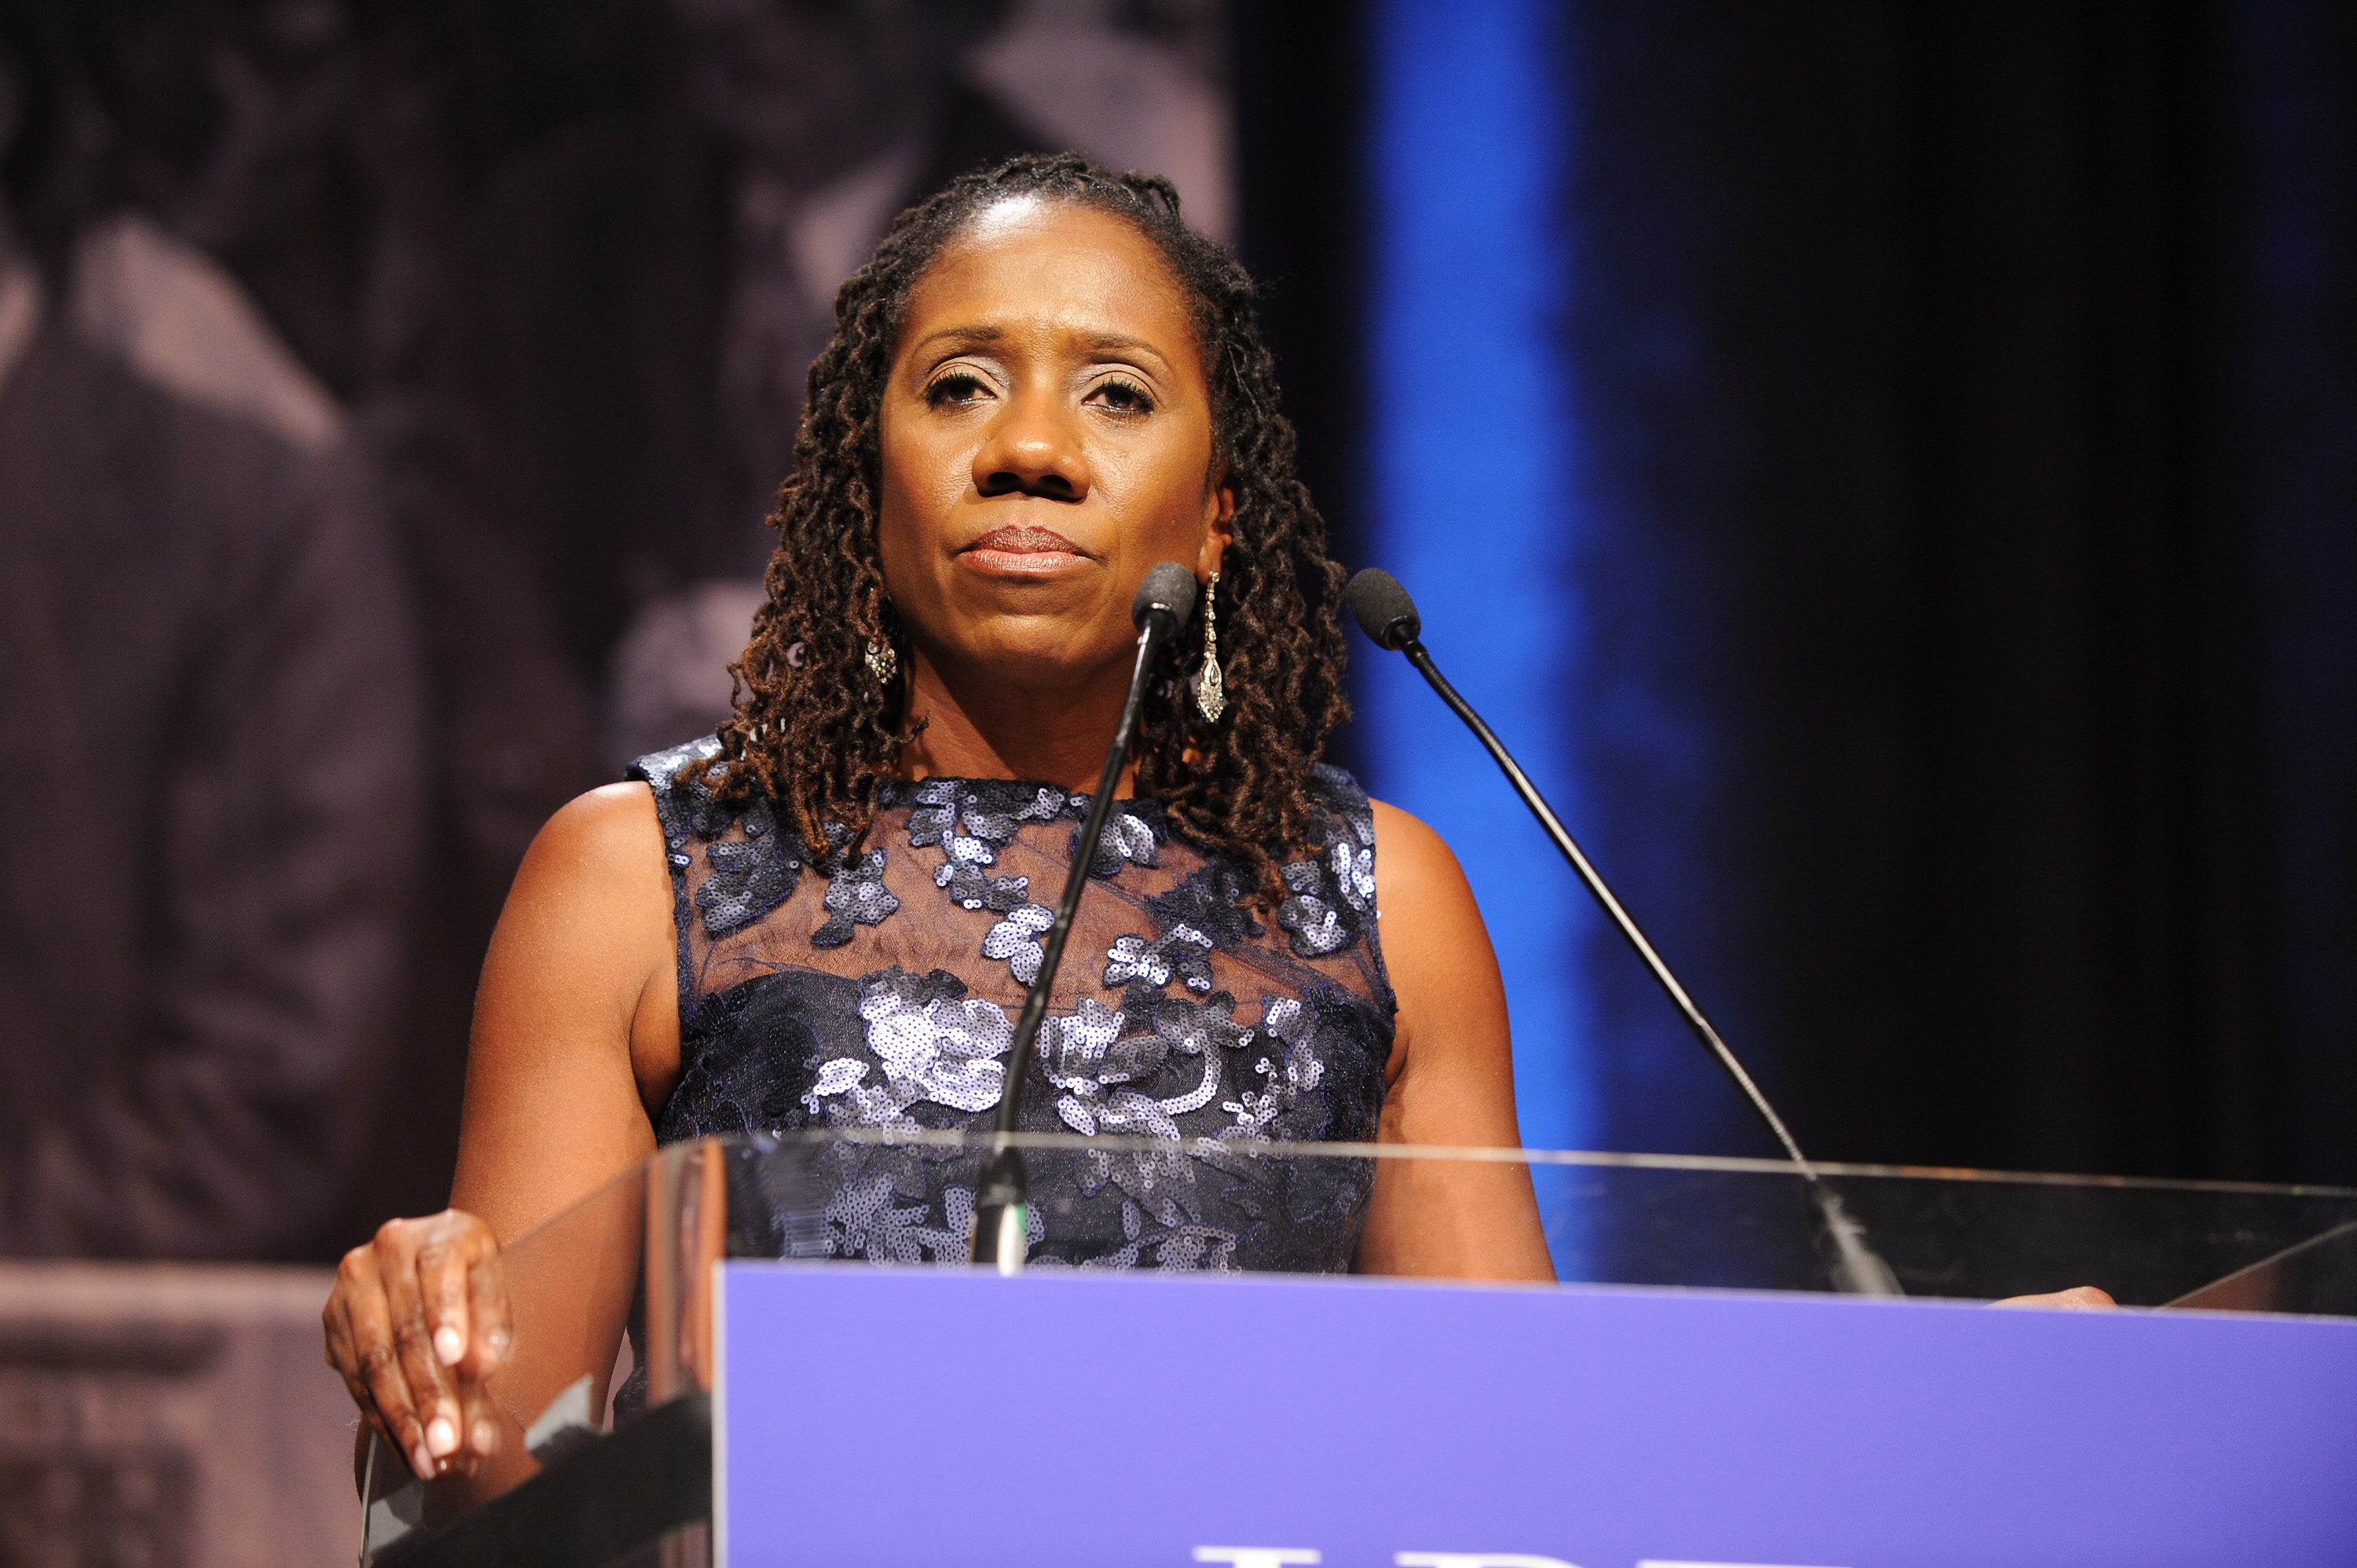 President and Director-Counsel of the LDF Sherrilyn Ifill speaks onstage during the Legal Defense Fund Annual Gala to commemorate the 60th anniversary of Brown V. Board of Education at the New York Hilton Midtown on November 6, 2014 in New York City.